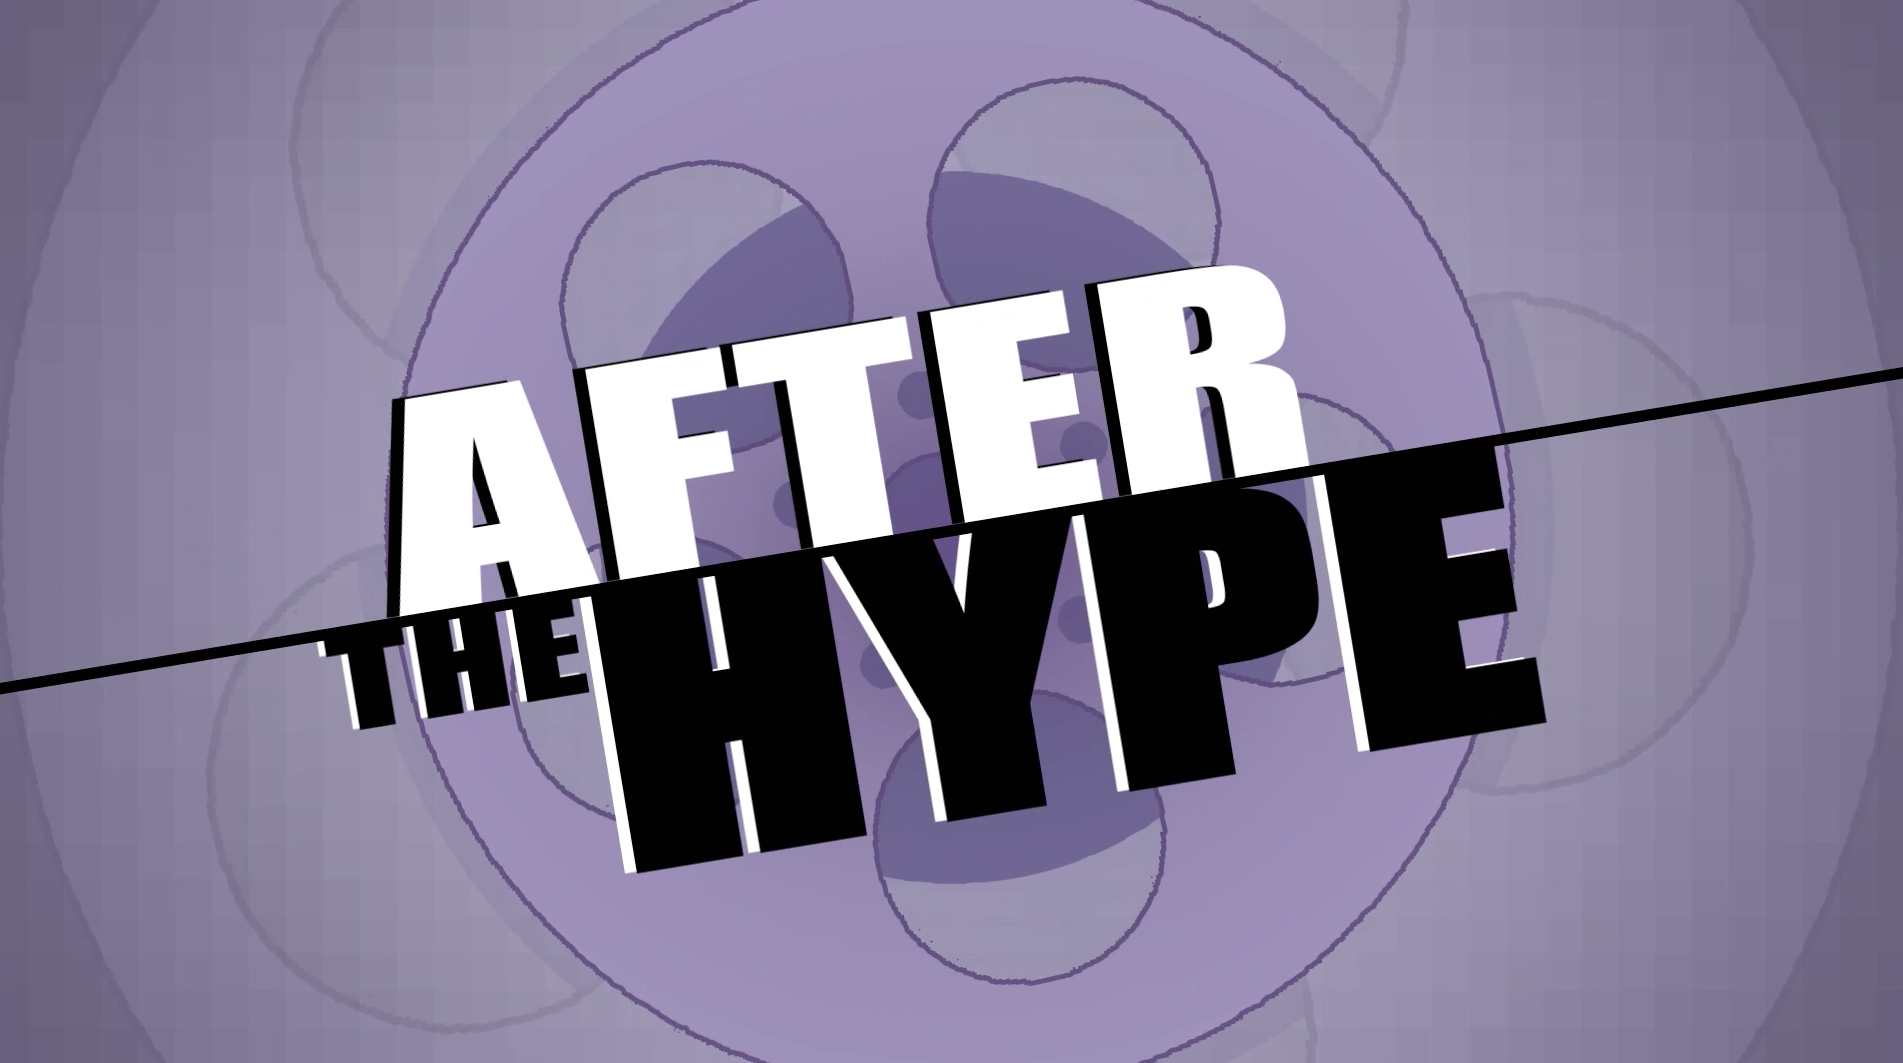 afterthehype